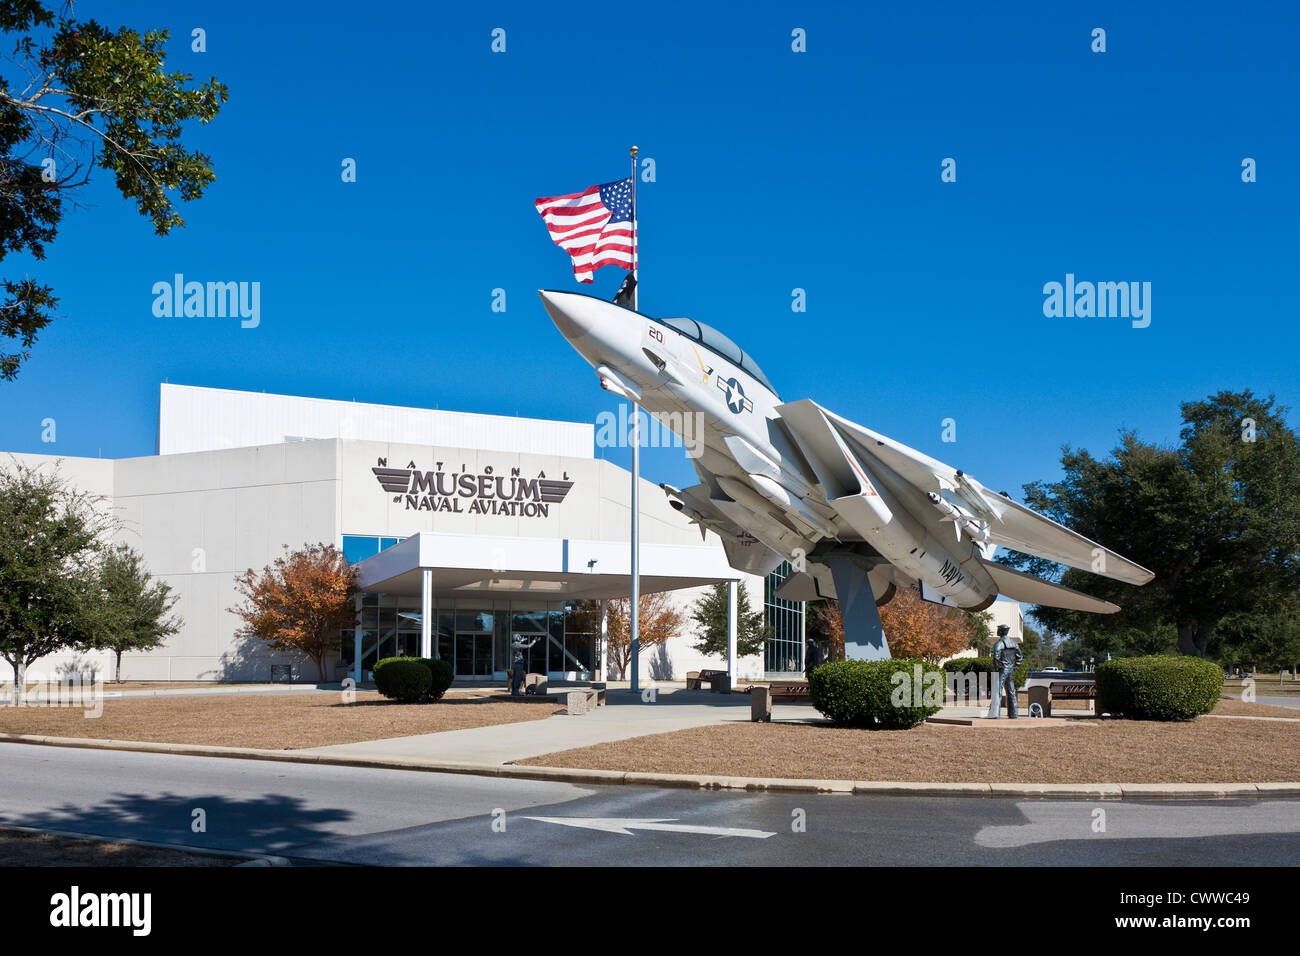 F-14A Tomcat fighter jet in front of the National Museum of Naval Aviation in Pensacola, FL - Stock Image